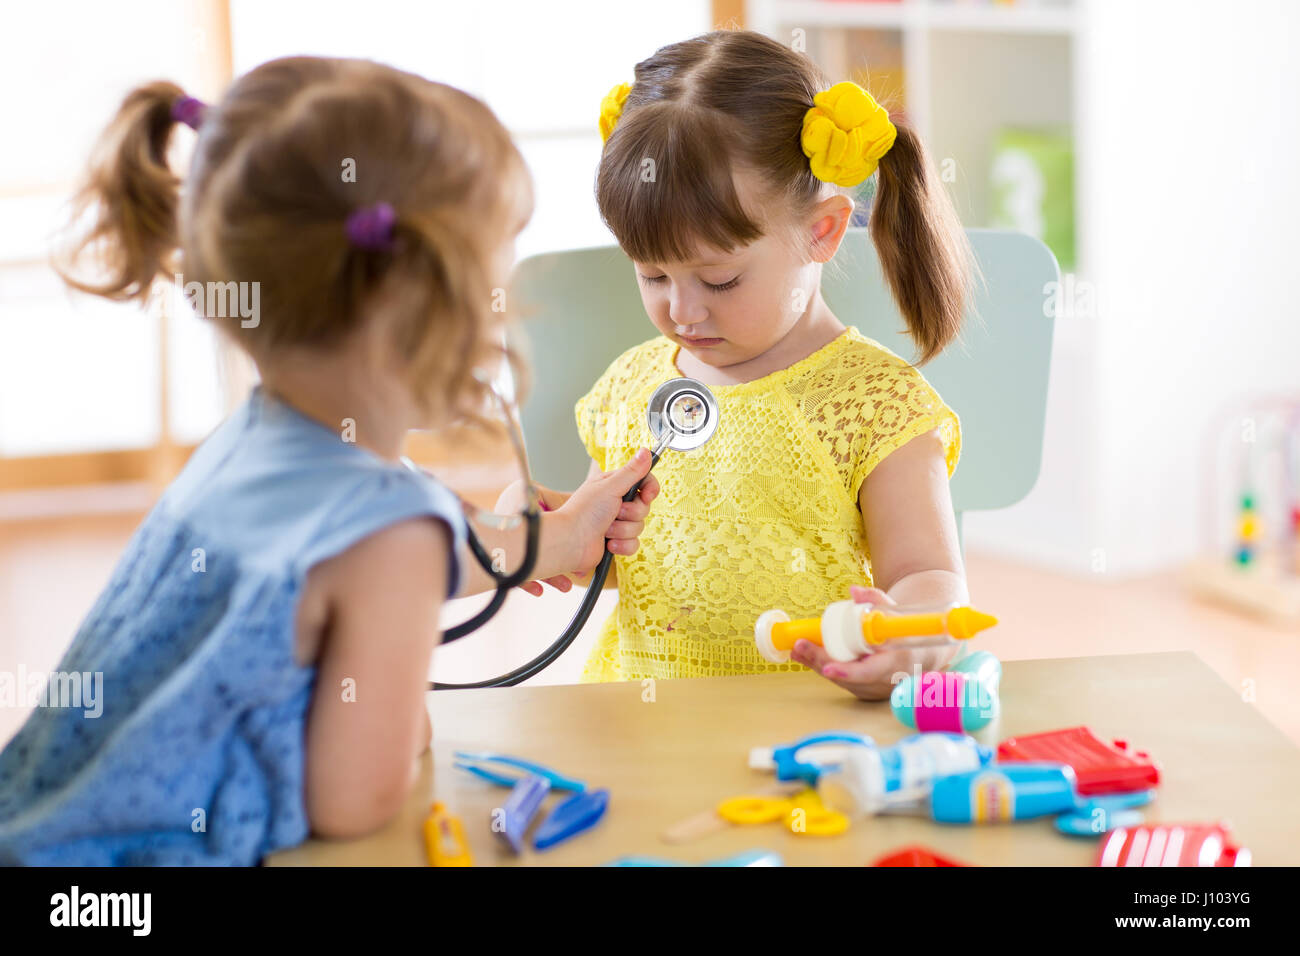 two cute children play doctor and hospital using stethoscope